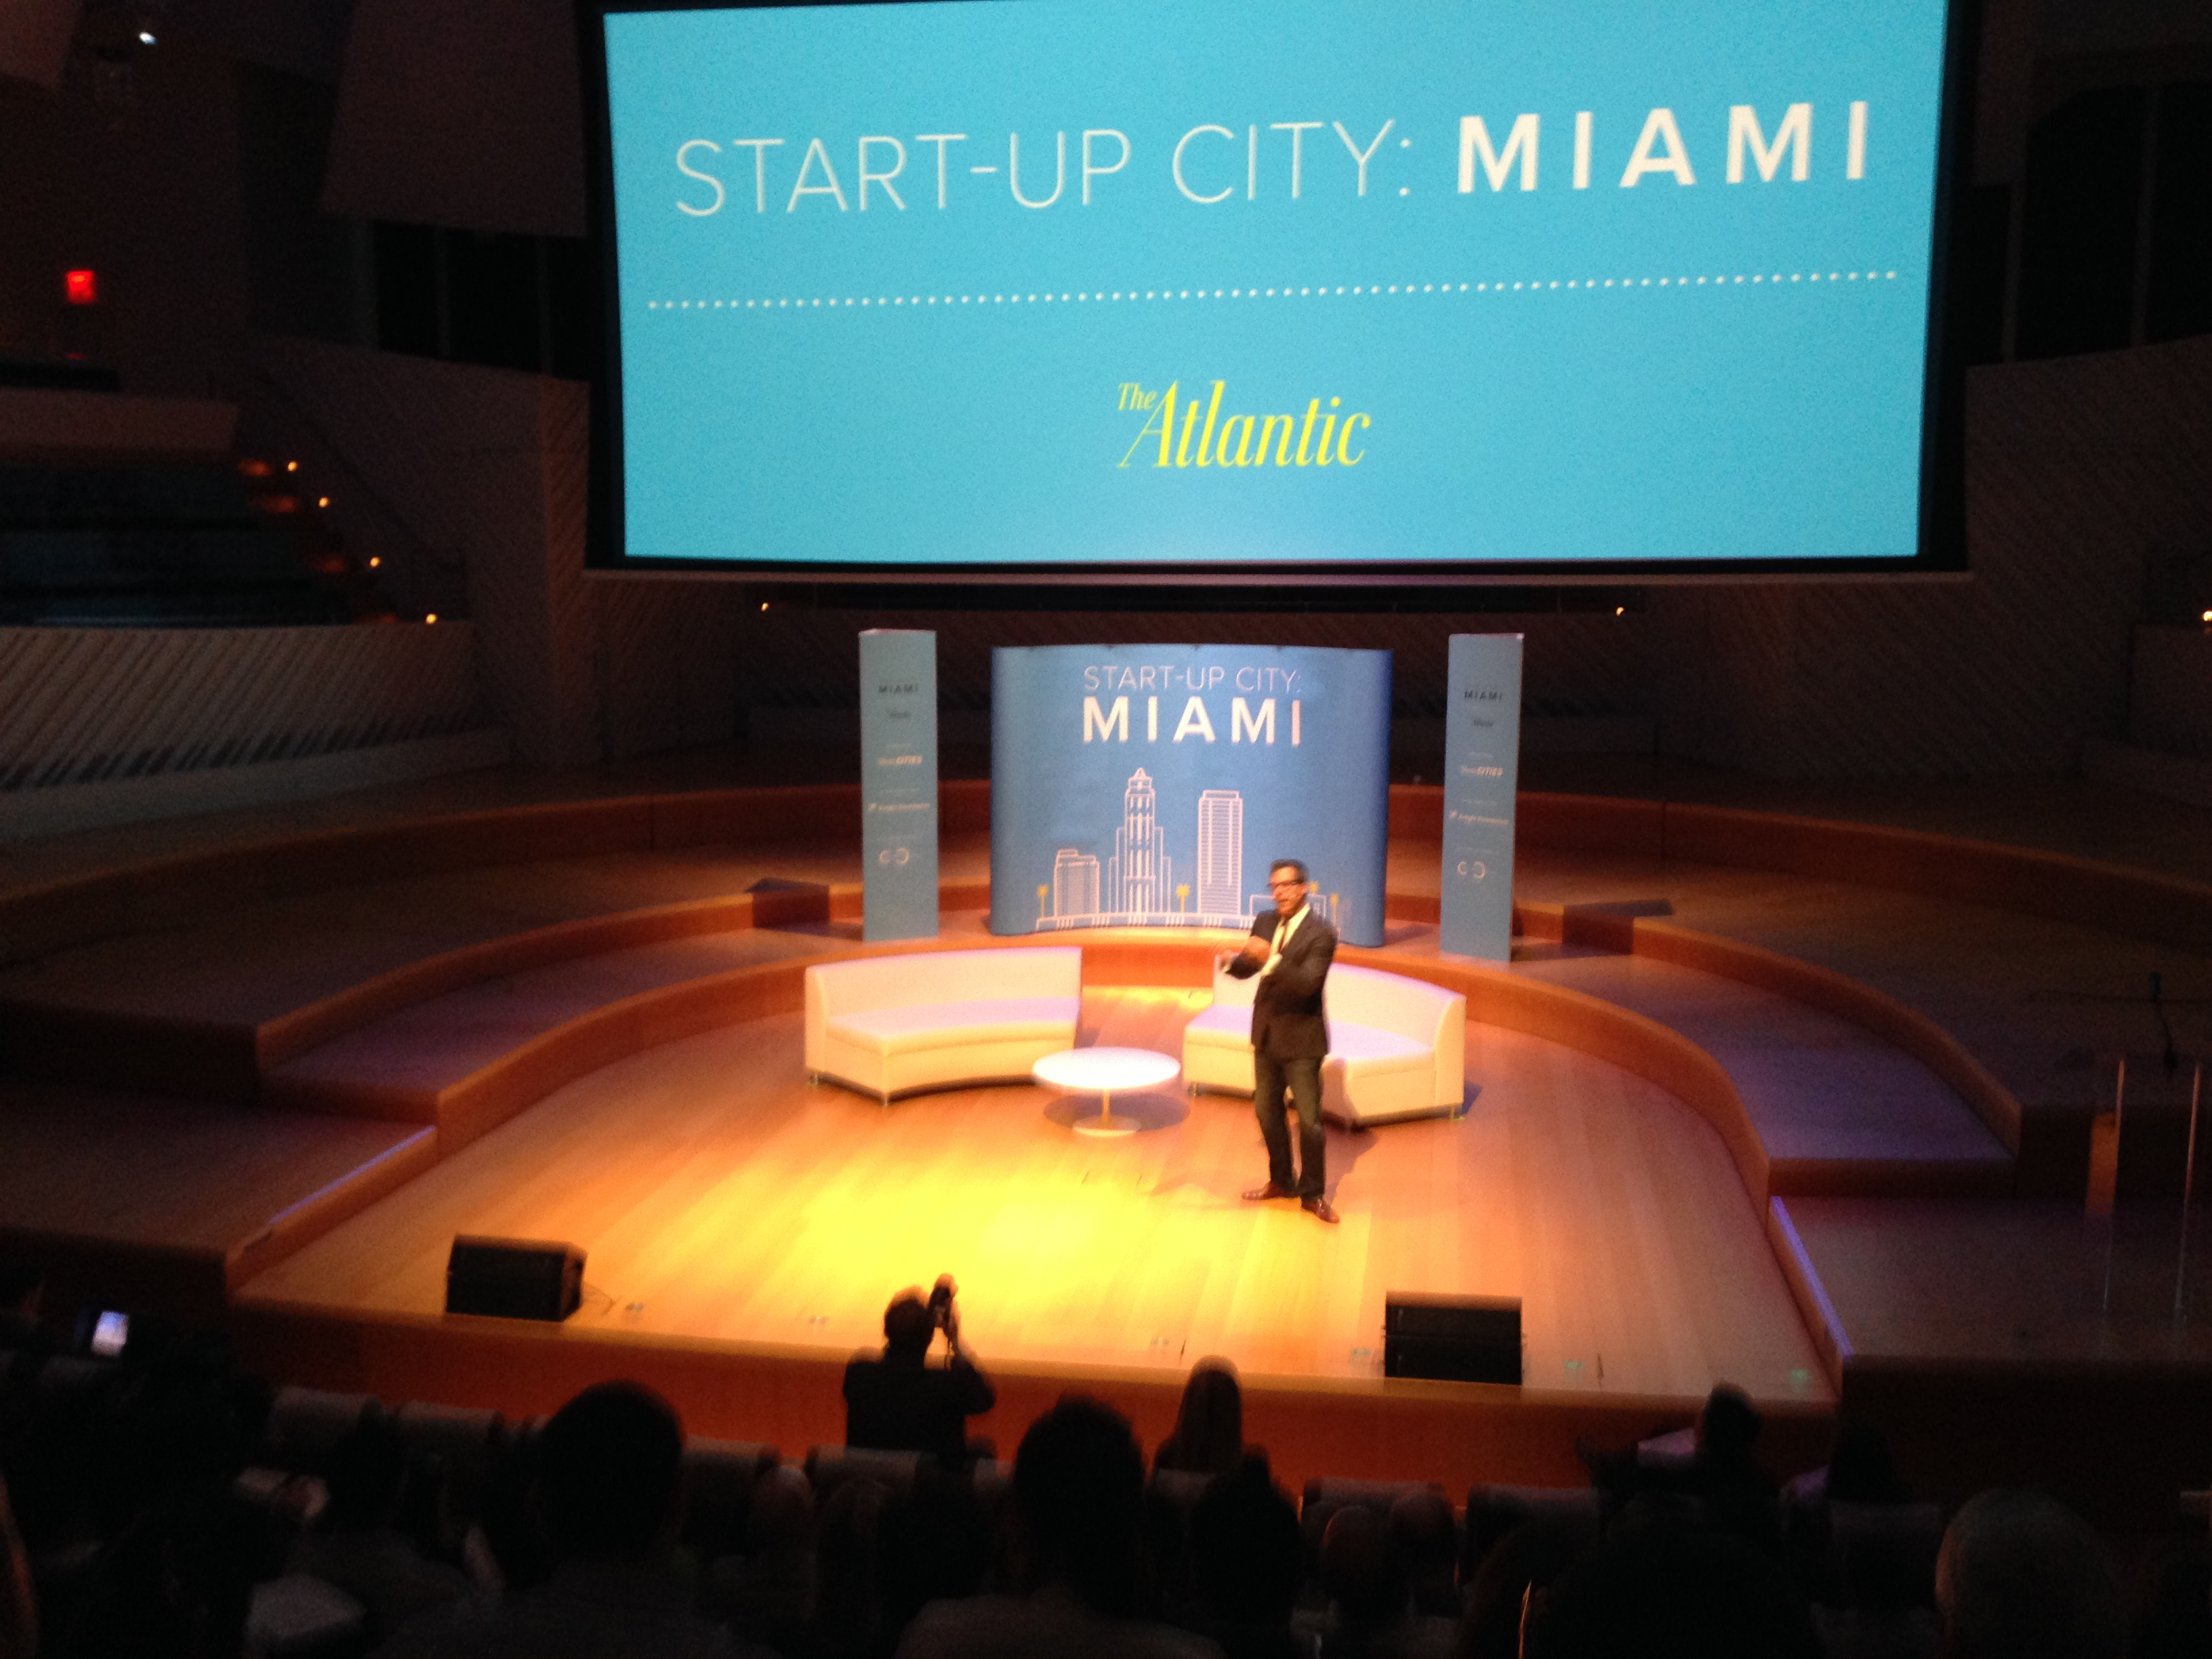 Reports released at Start-Up City: Miami event show a tech